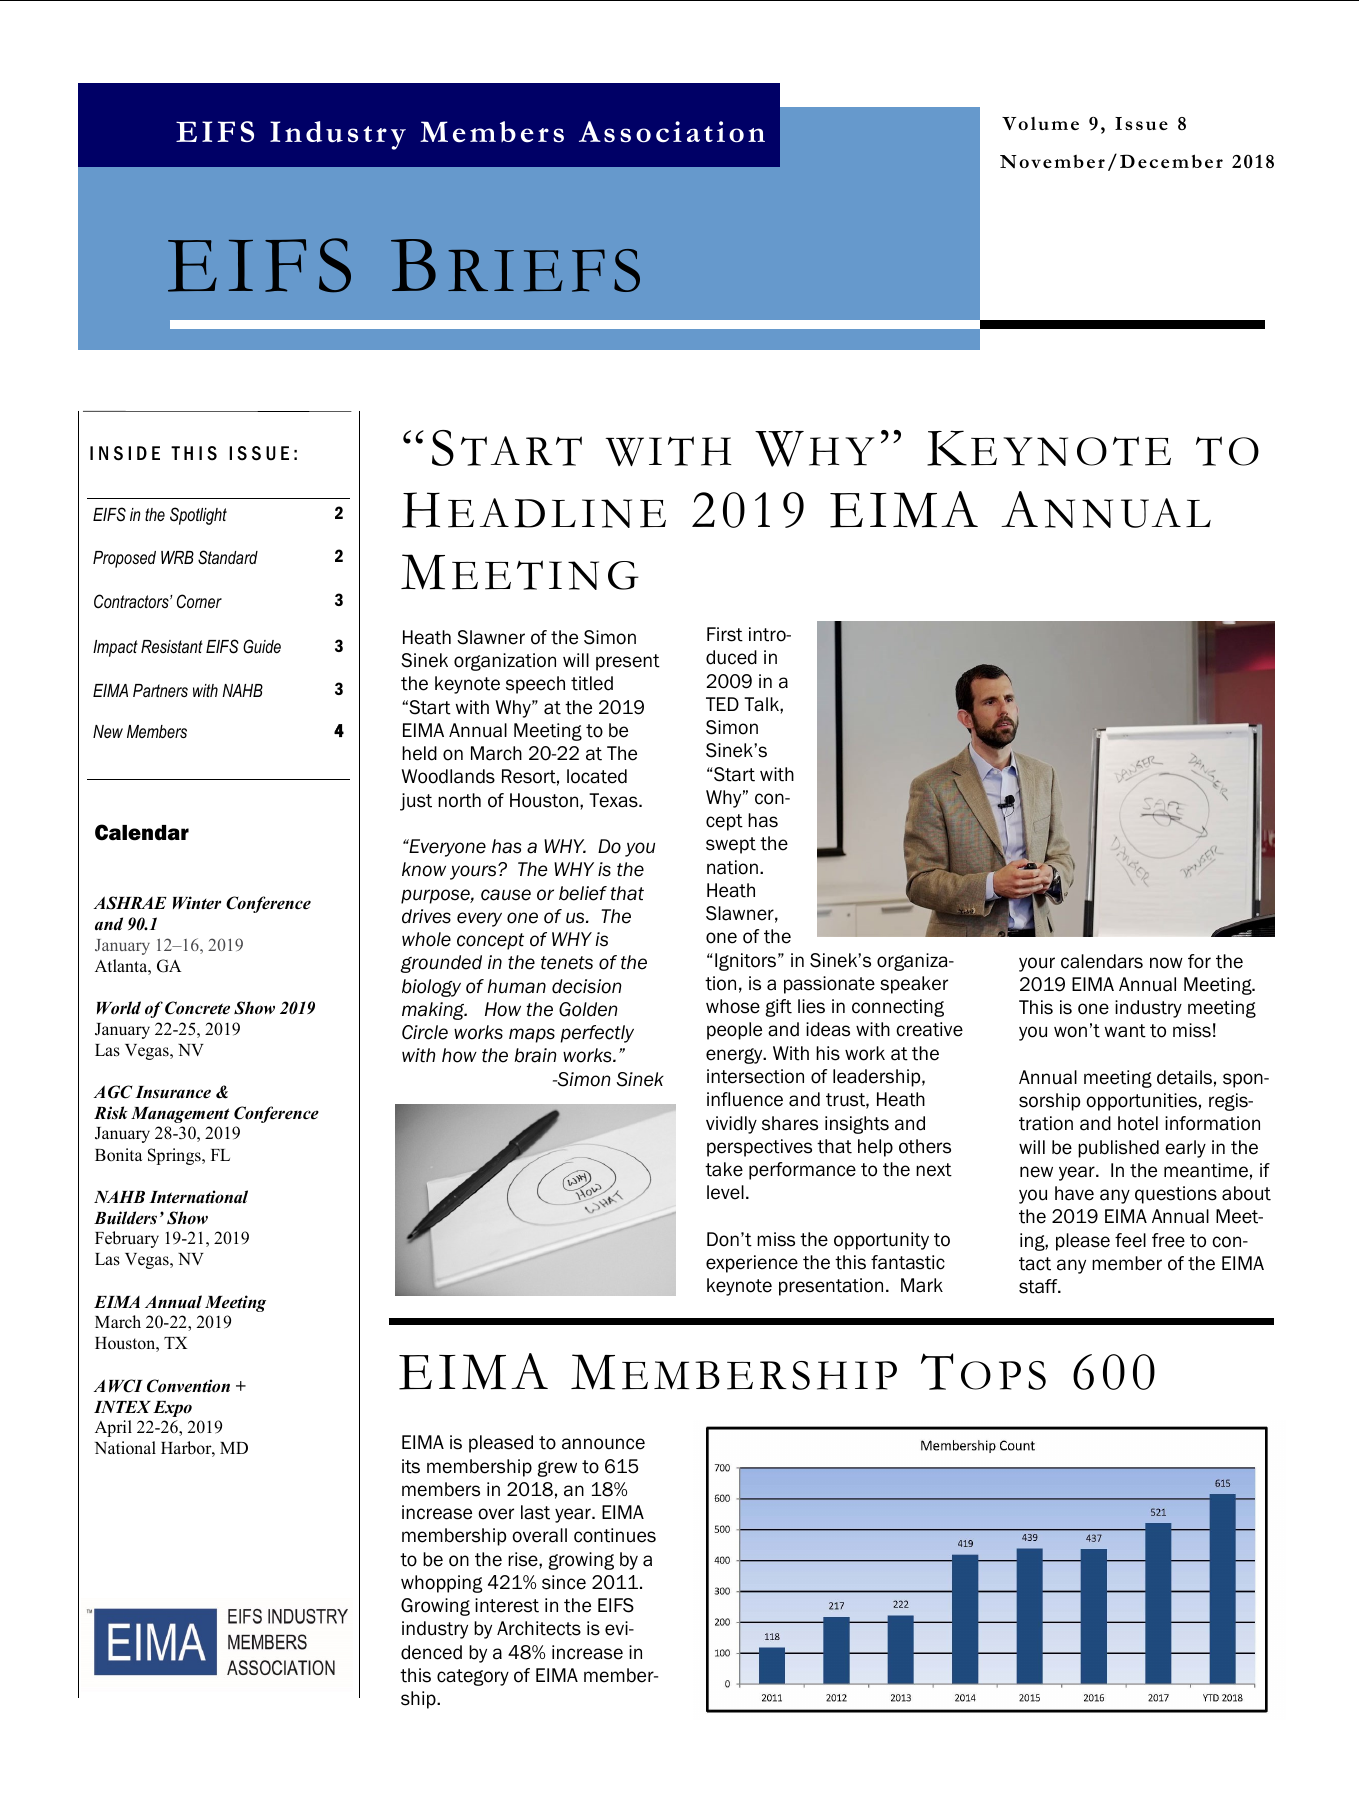 EIFS Briefs - Vol 9, Issue 8 - EIFS Industry Members Association - EIMA Newsletter